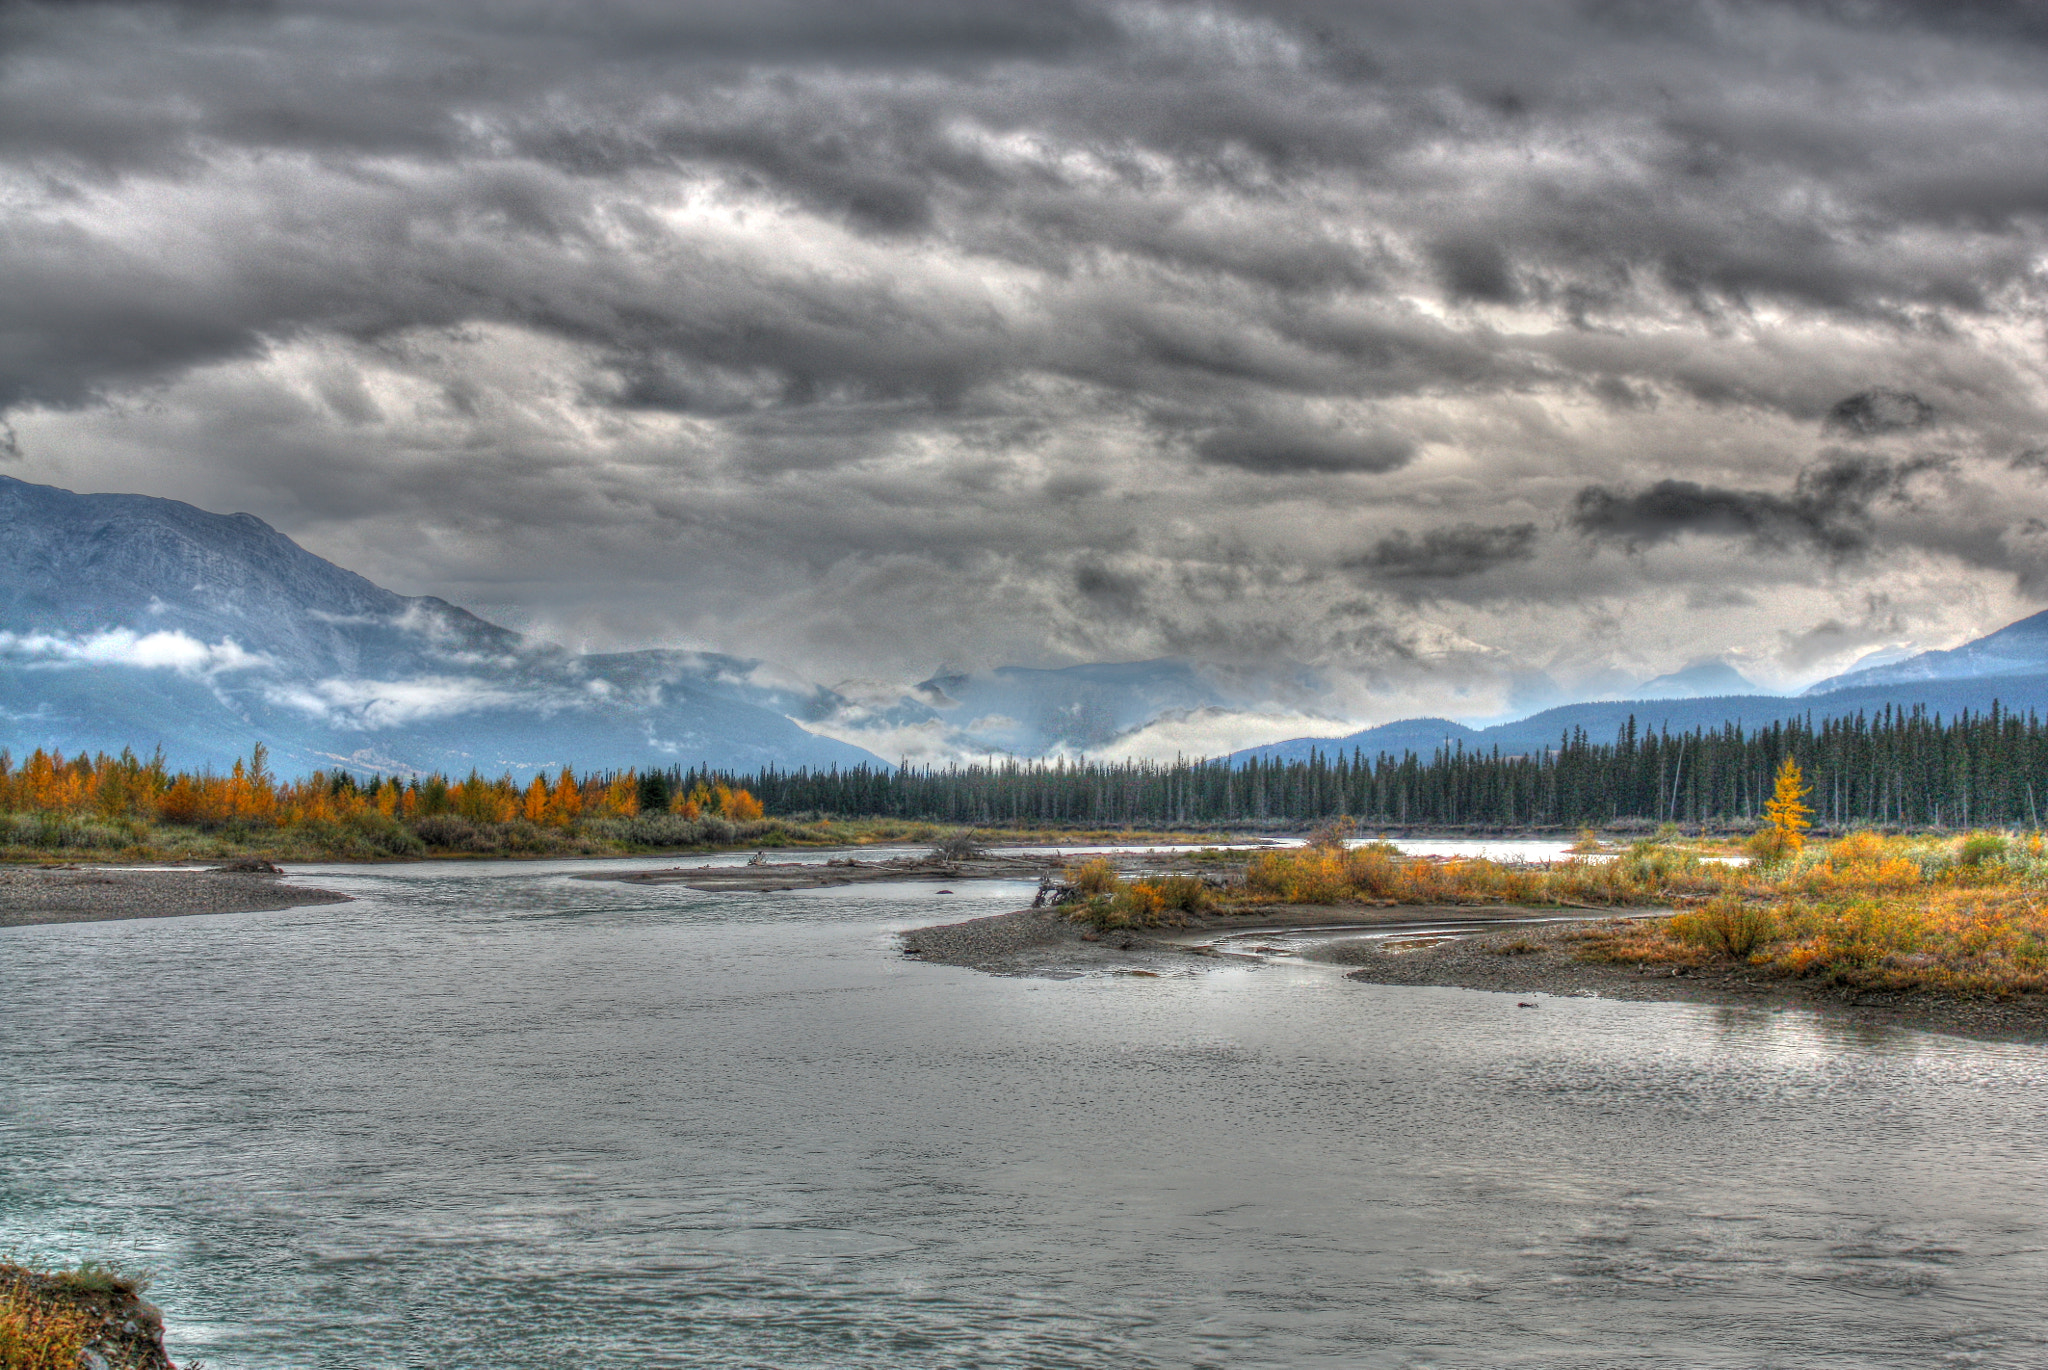 Photograph The River by Michael Moore on 500px